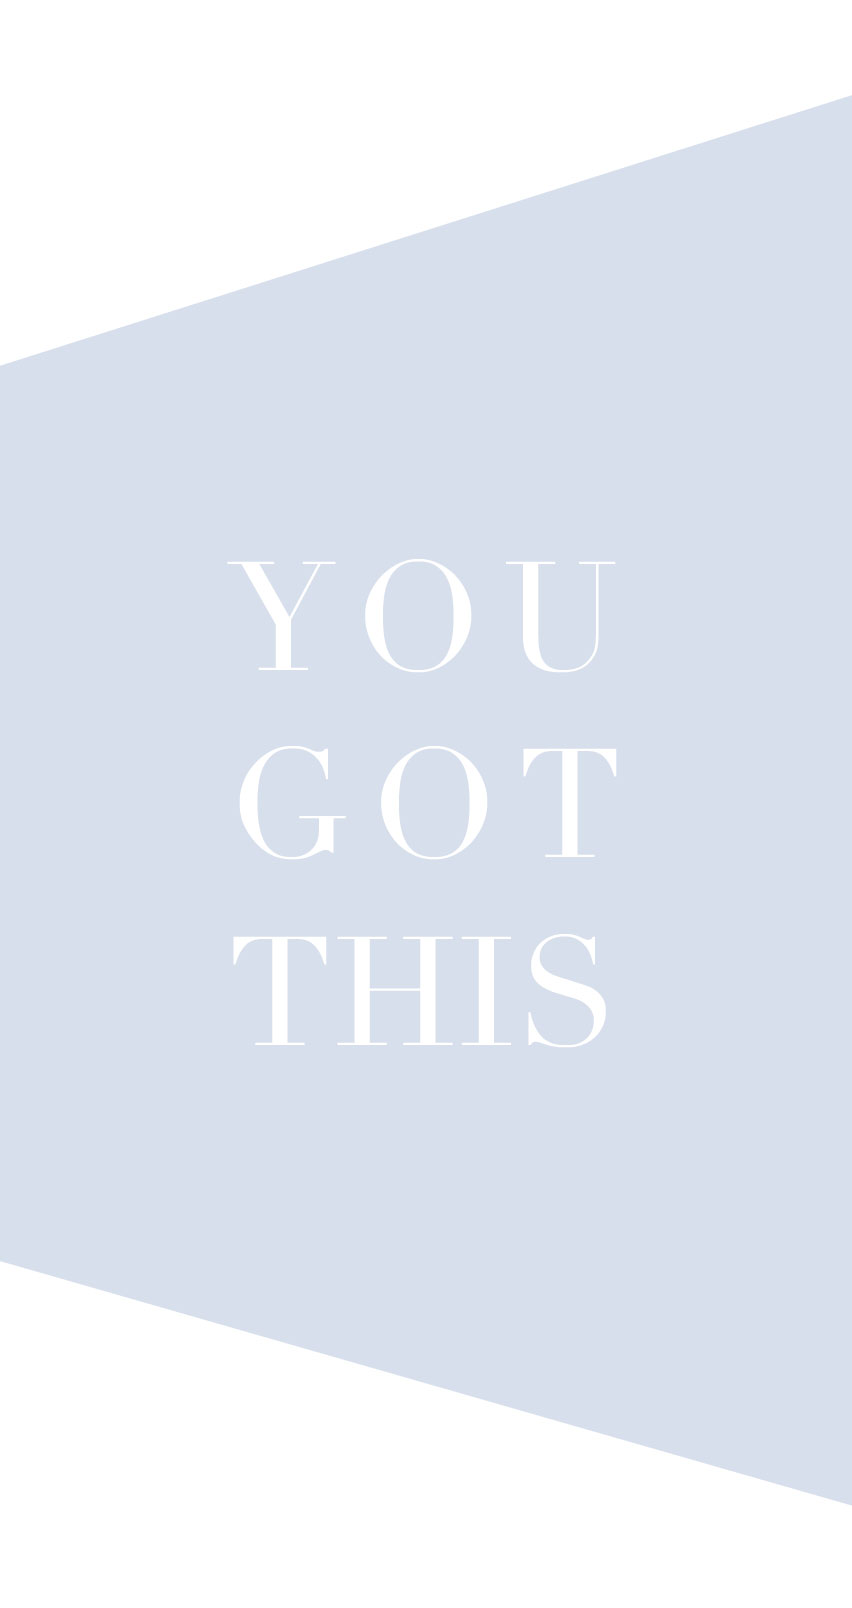 Downloadable Phone Backgrounds | Jennifer Diaz | Hand Lettering by Amy May Paper | You Got This